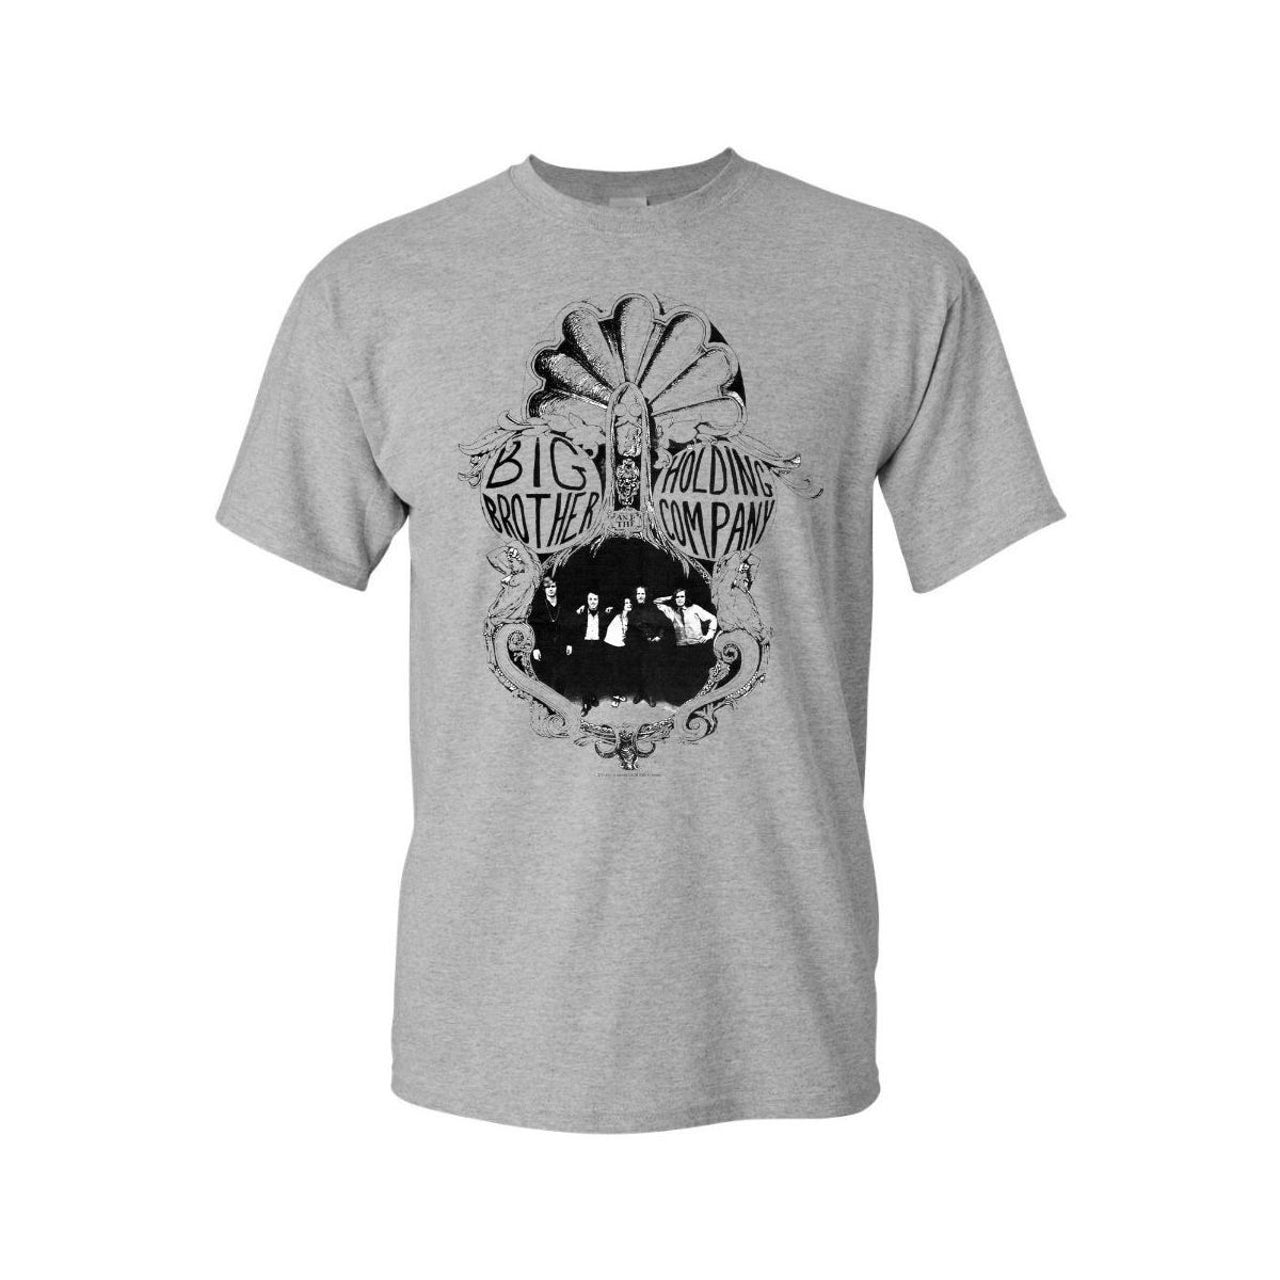 Big Brother & The Holding Company Orleans T-Shirt